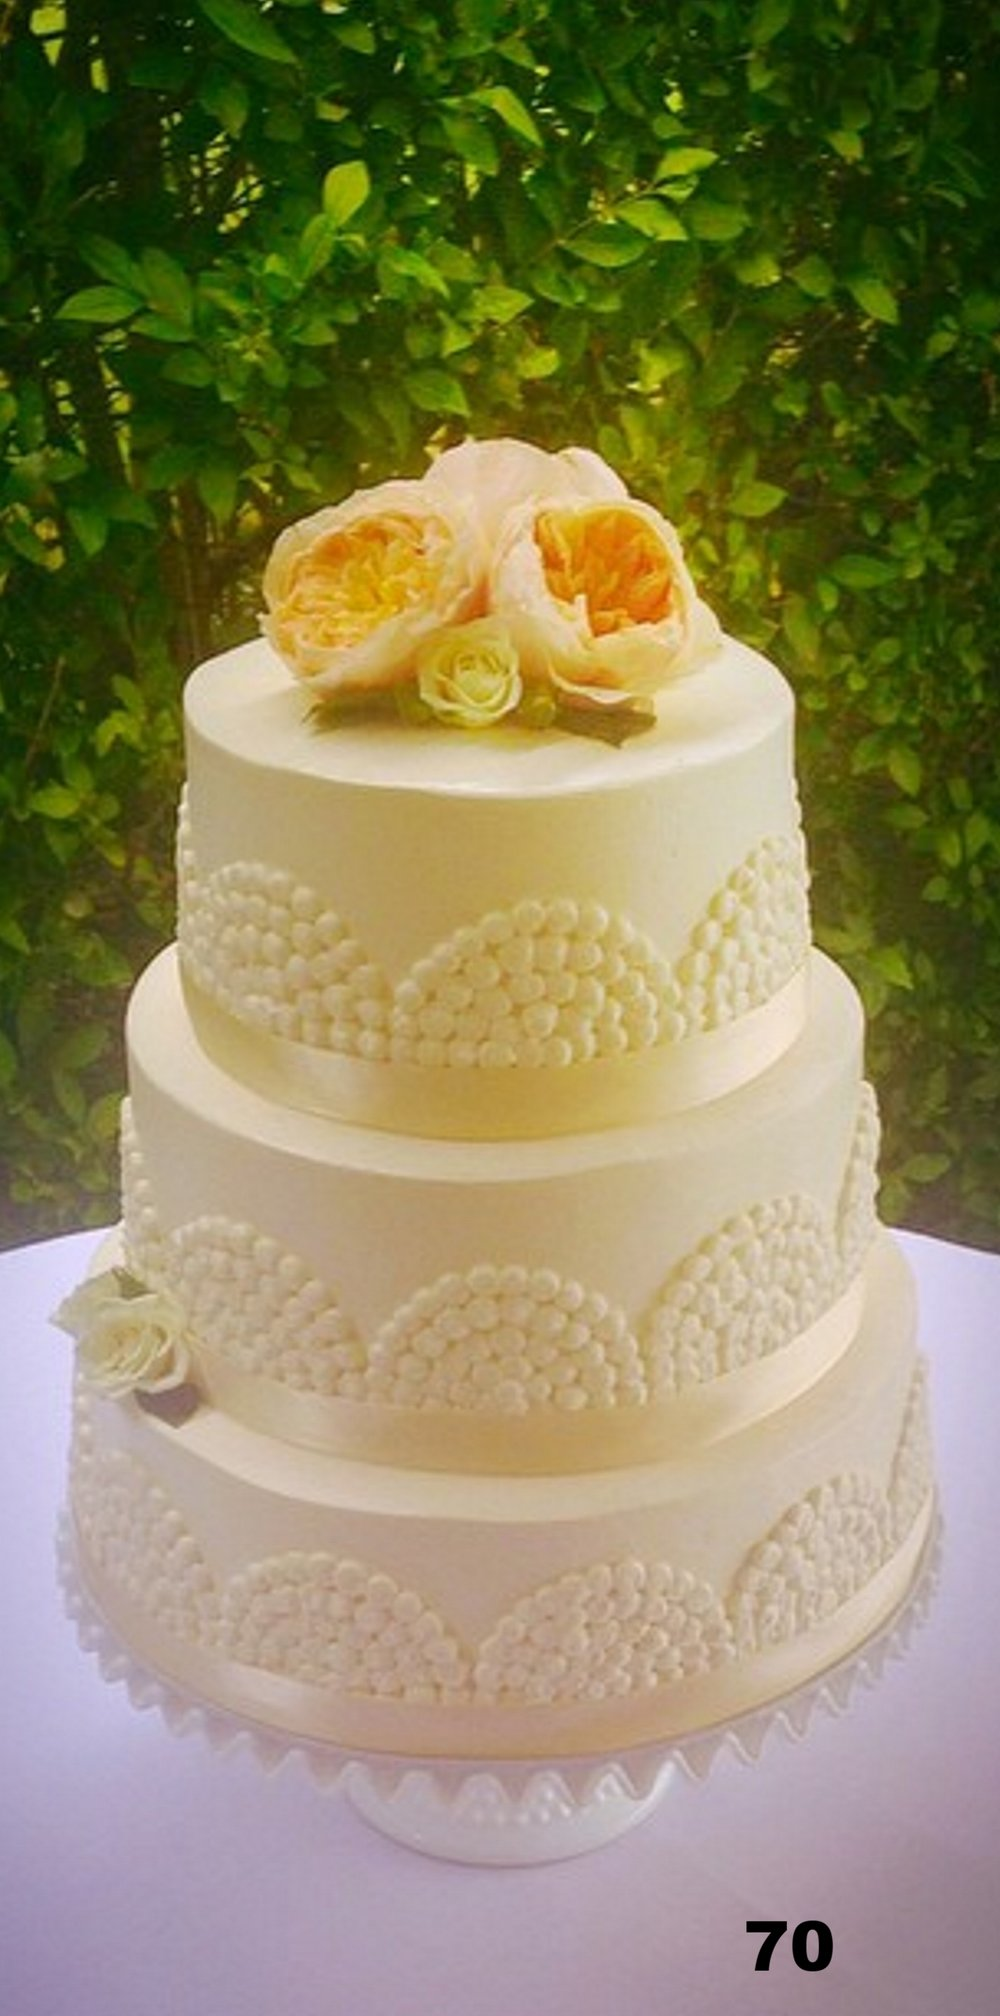 Wedding Cakes Gallery 4 — Cottage St Bakery